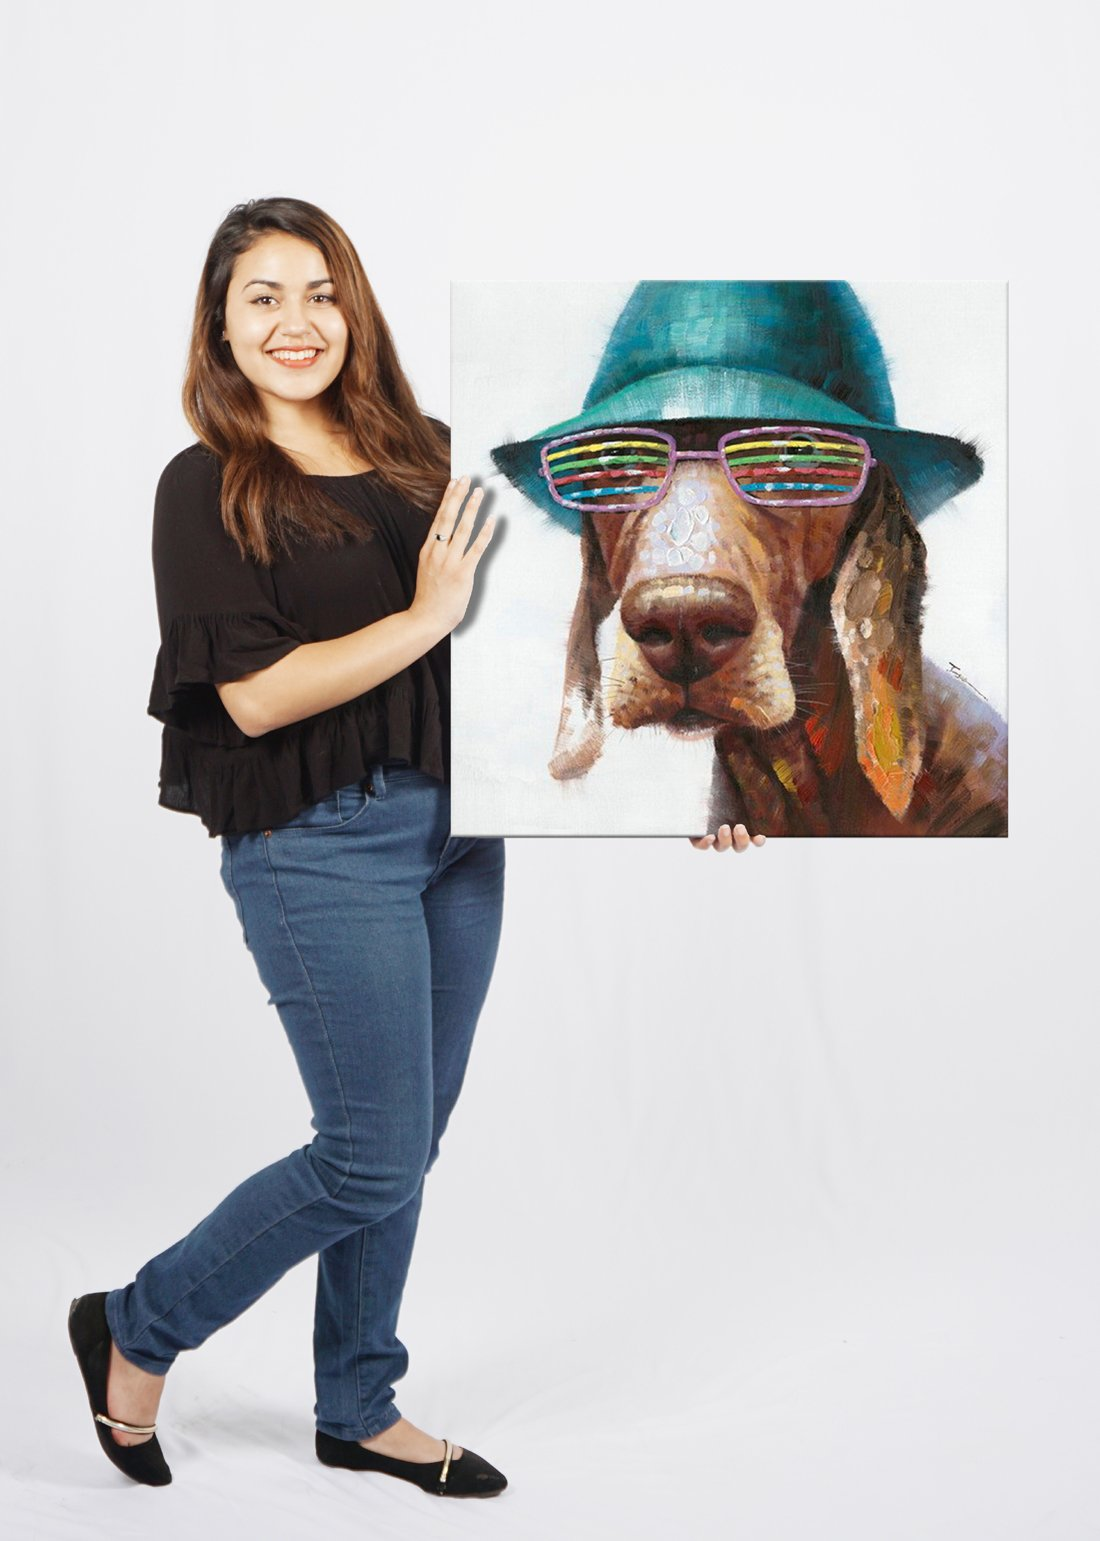 SEVEN WALL ARTS - 100% Hand Painted Oil Painting Animal Cute Dog Wears Colorful Glasses with Stretched Frame 24 x 24 Inch by SEVEN WALL ARTS (Image #5)